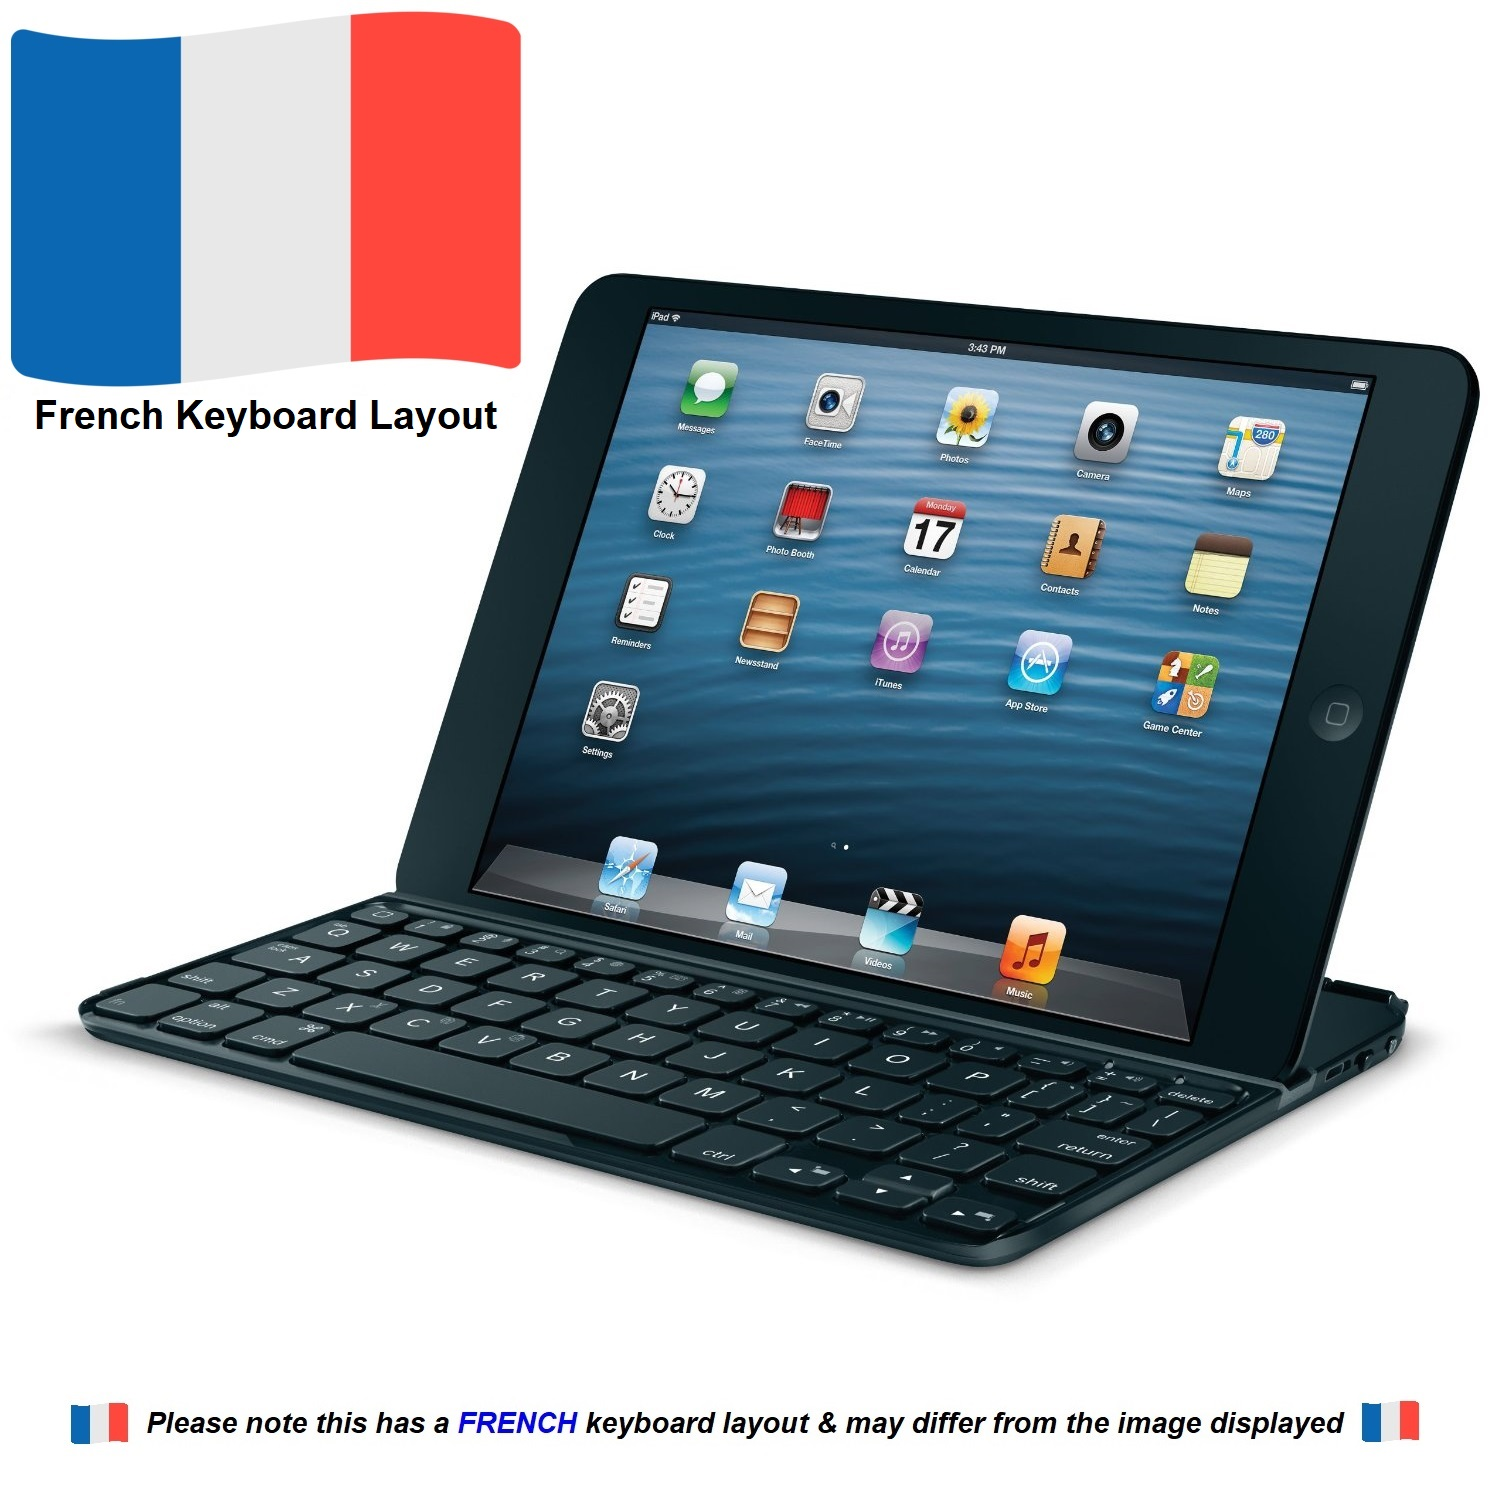 Details about Logitech Ultrathin Wireless Bluetooth FRENCH Keyboard for  iPad mini 1/2/3, Black